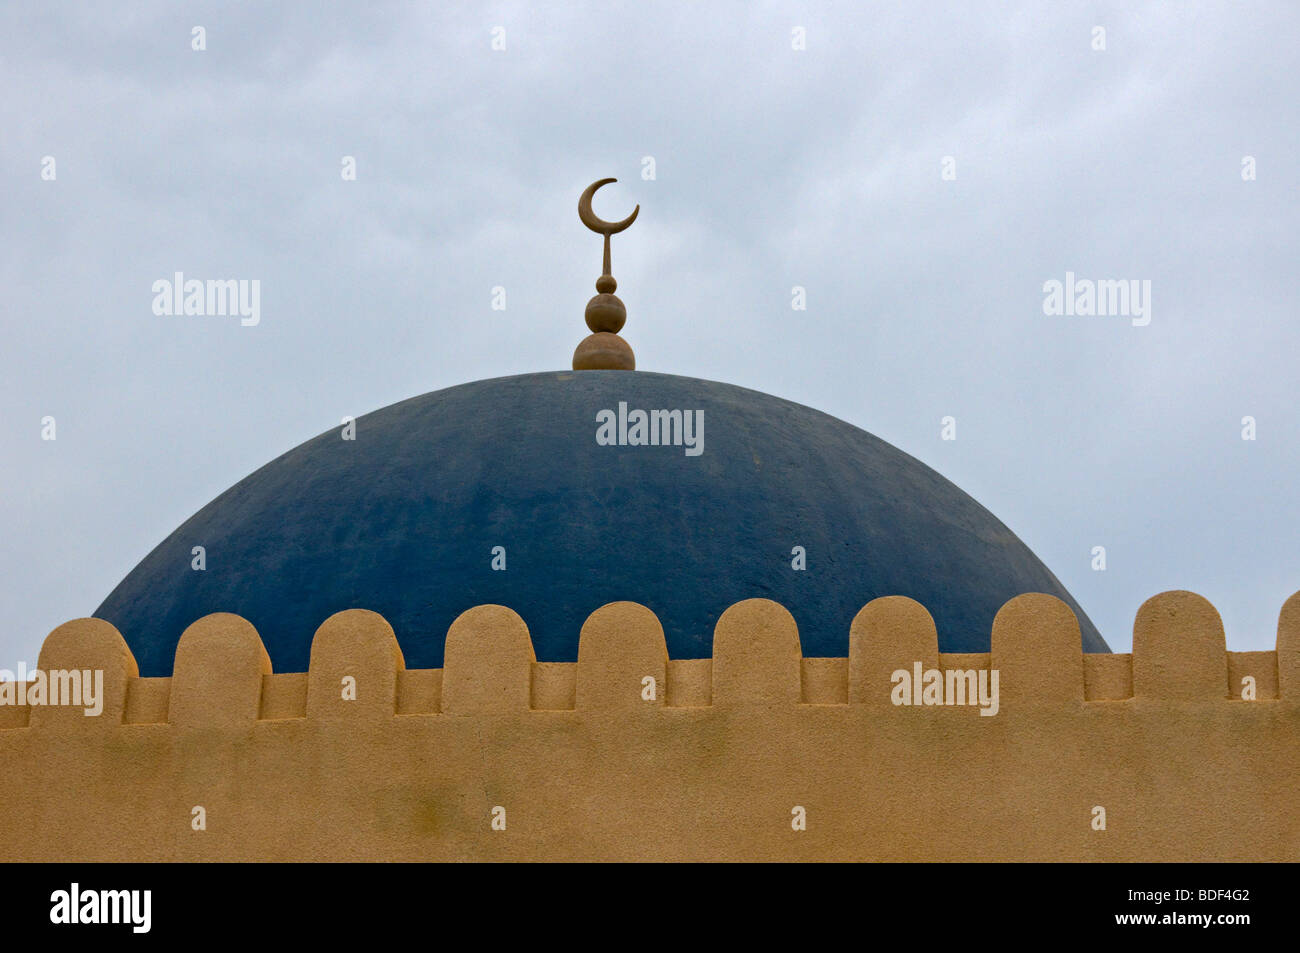 Rooftop of a mosque Muscat Sultanate of Oman - Stock Image